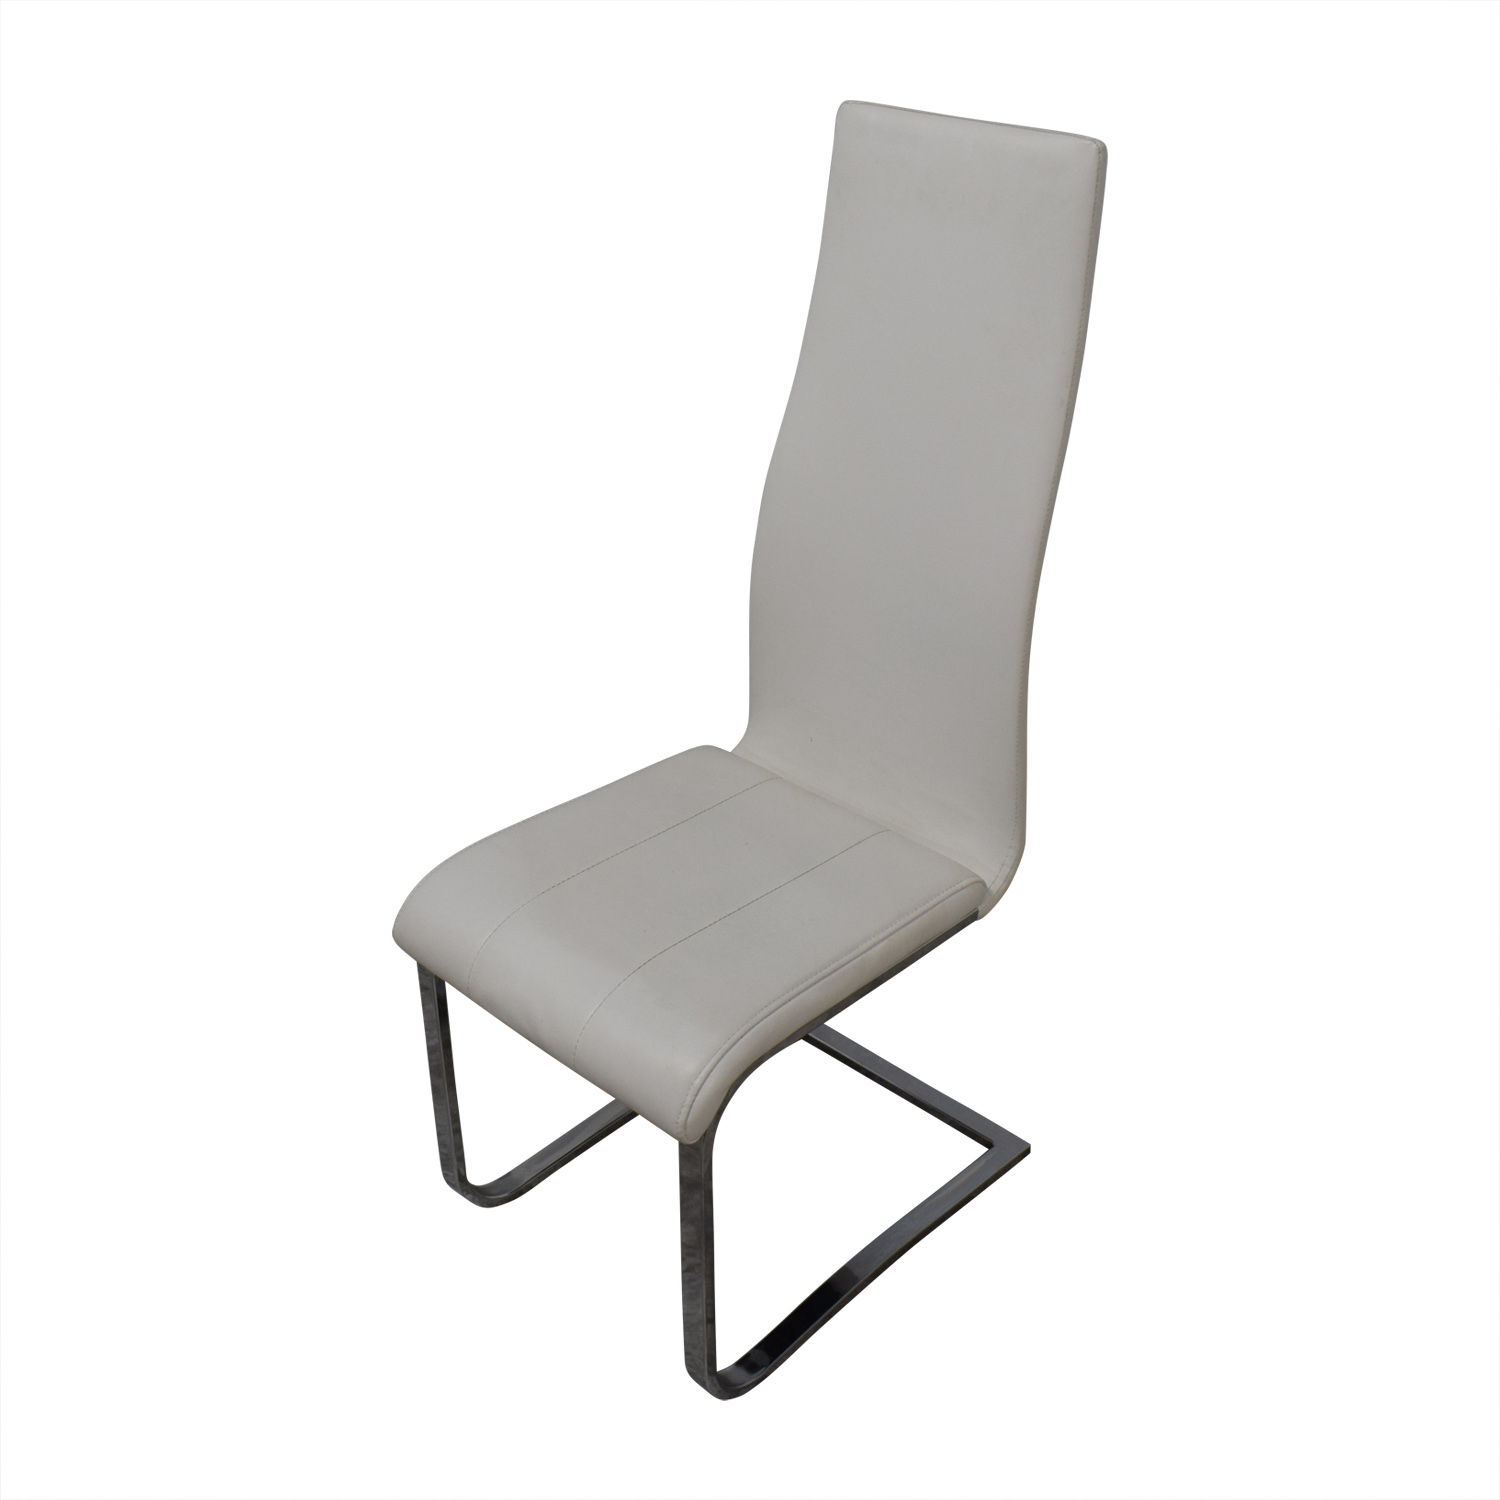 Coaster Fine Furniture Coaster Modern White Leather Dinning Chairs second hand